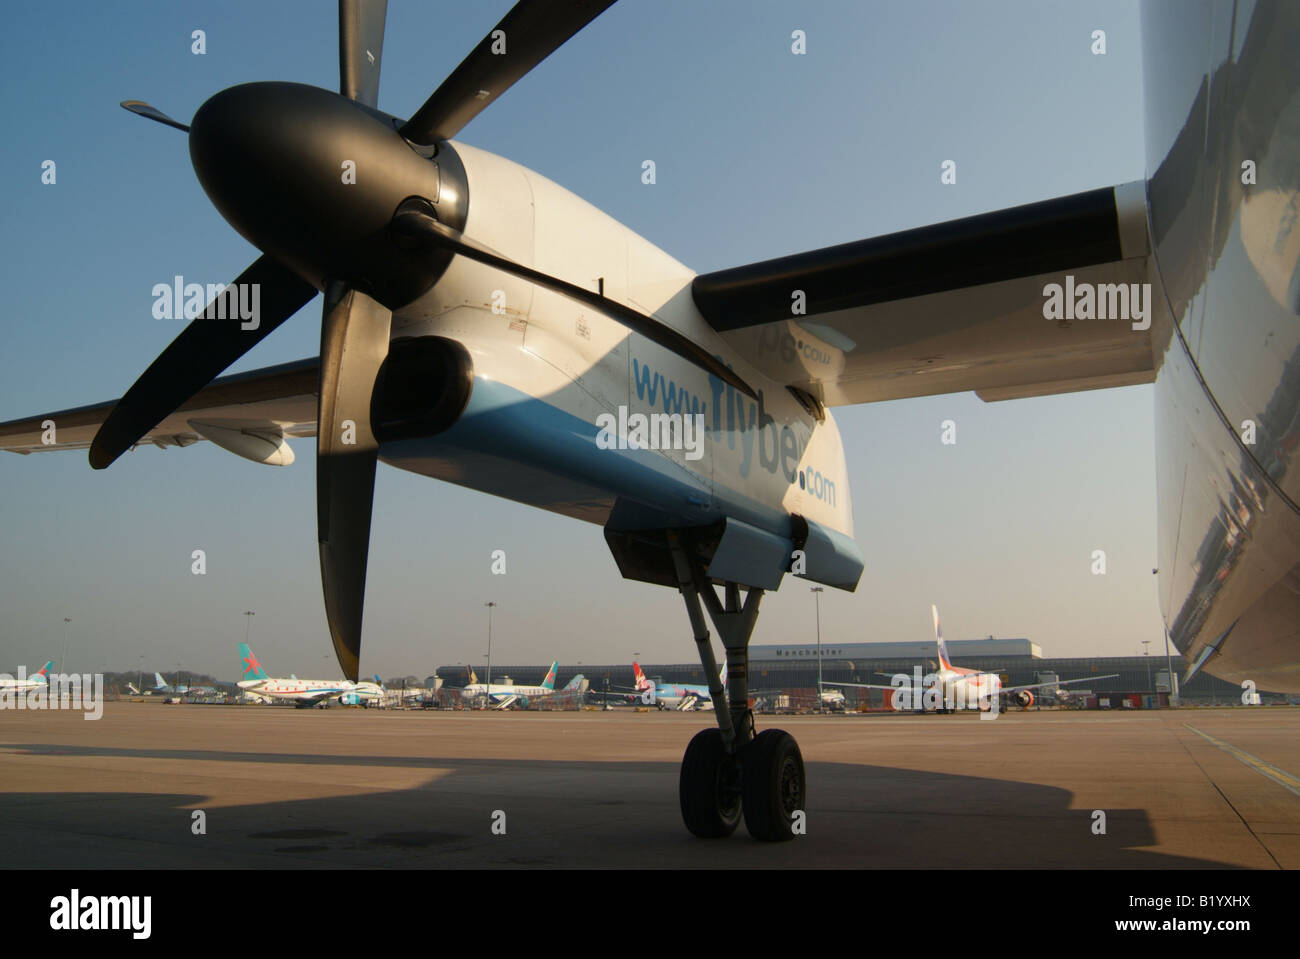 A Flybe Dash8 400 Turboprop aircraft mainly showing the Pratt and Whitney engine viewed from below and looking upwards - Stock Image